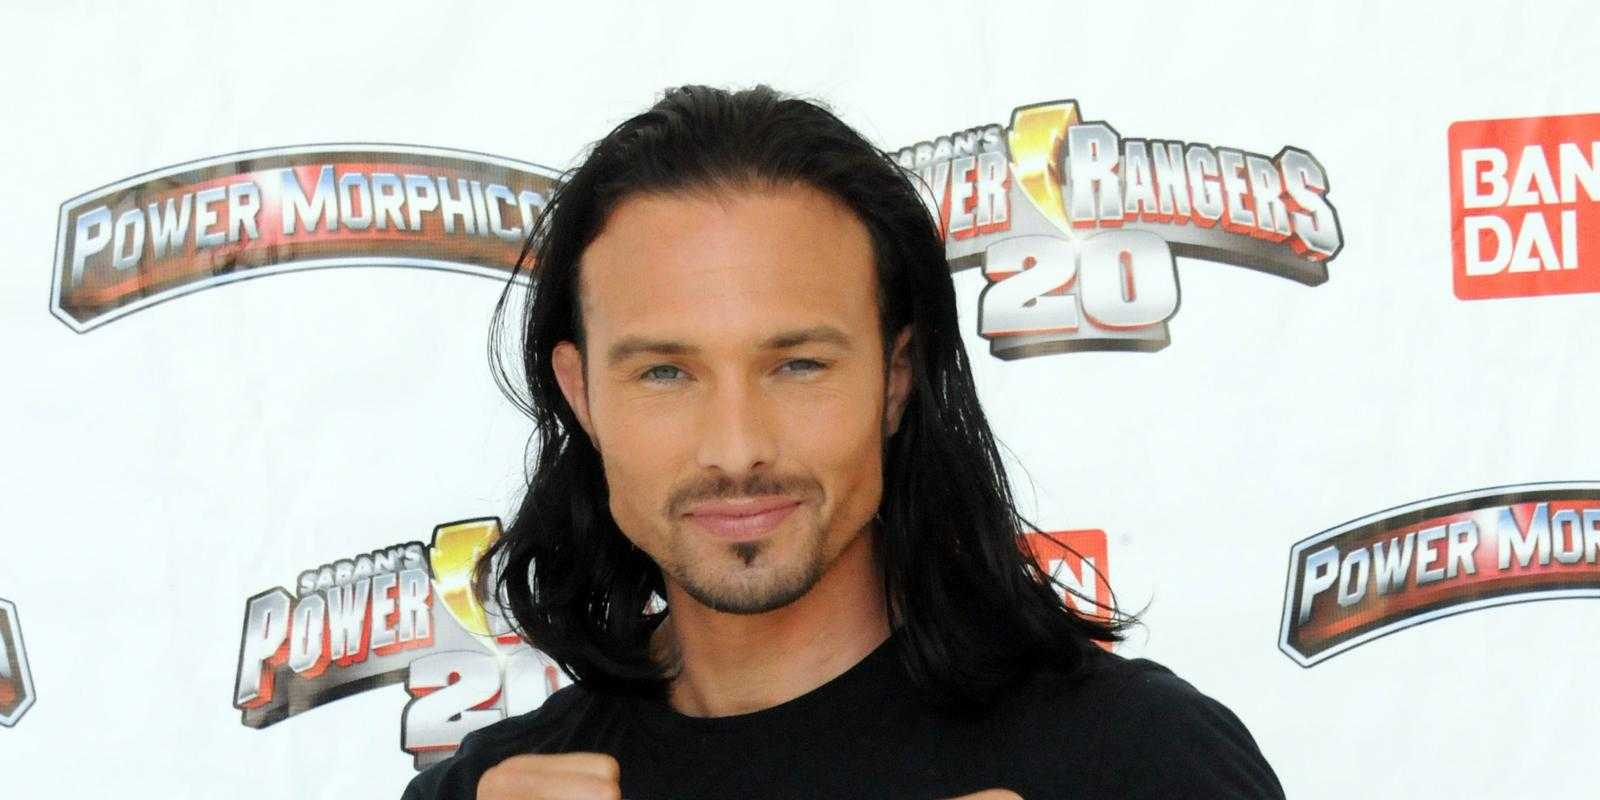 Former Power Rangers Actor Pleads Guilty To Killing Roommate With Sword | Medina